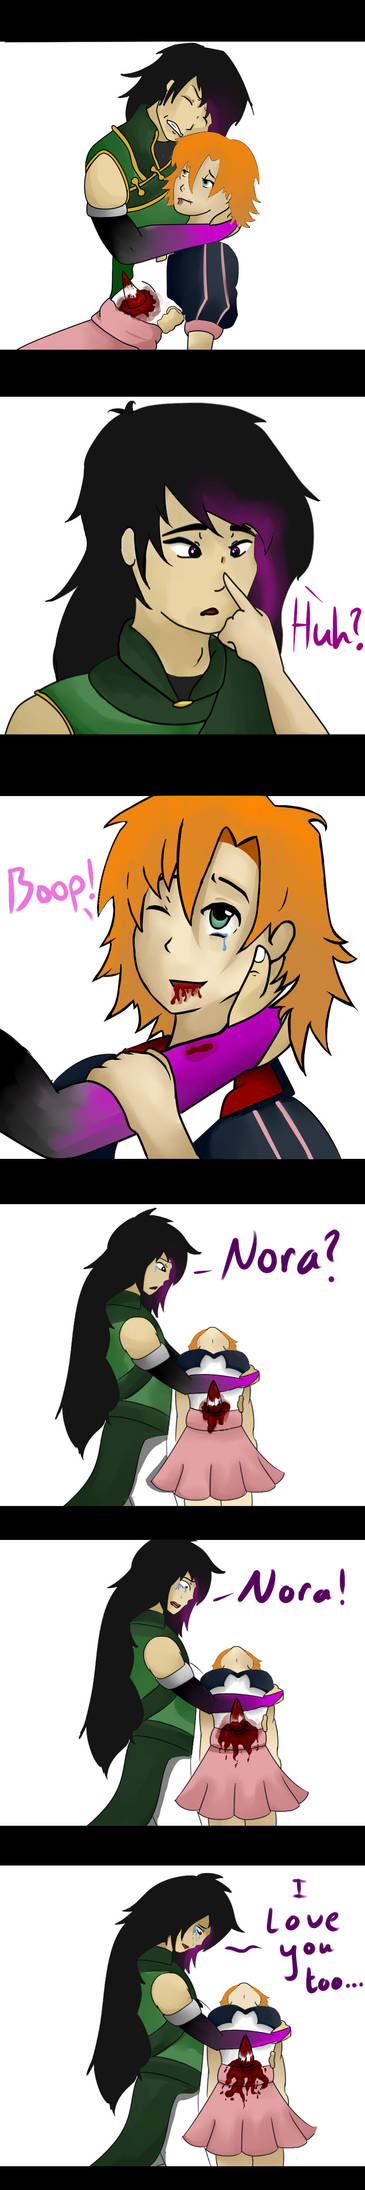 Ren and Nora by ChangelingRiddle